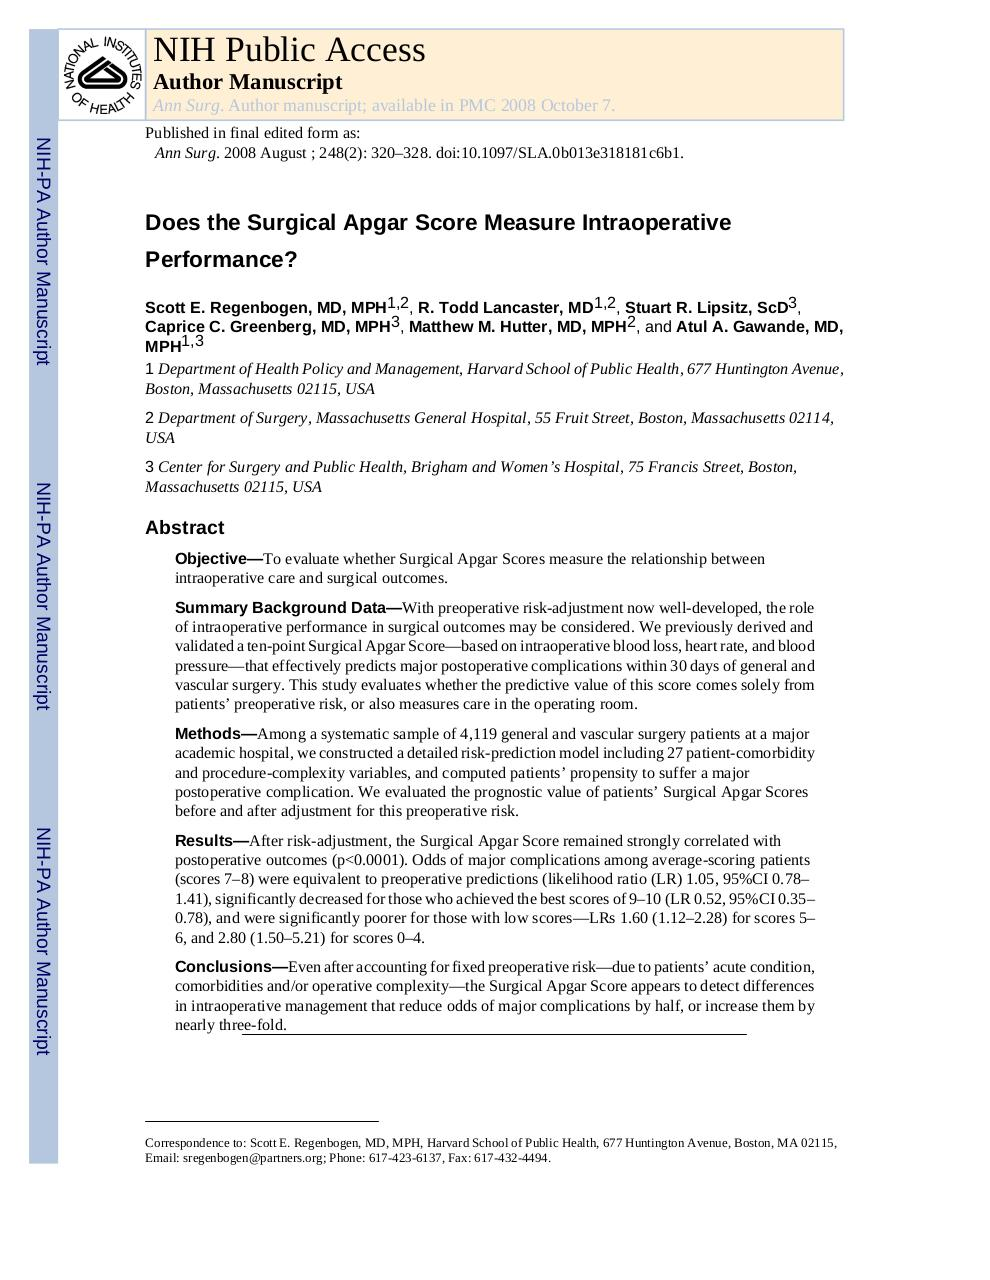 Does the Surgical Apgar Score Measure Intraoperative.pdf - page 1/16